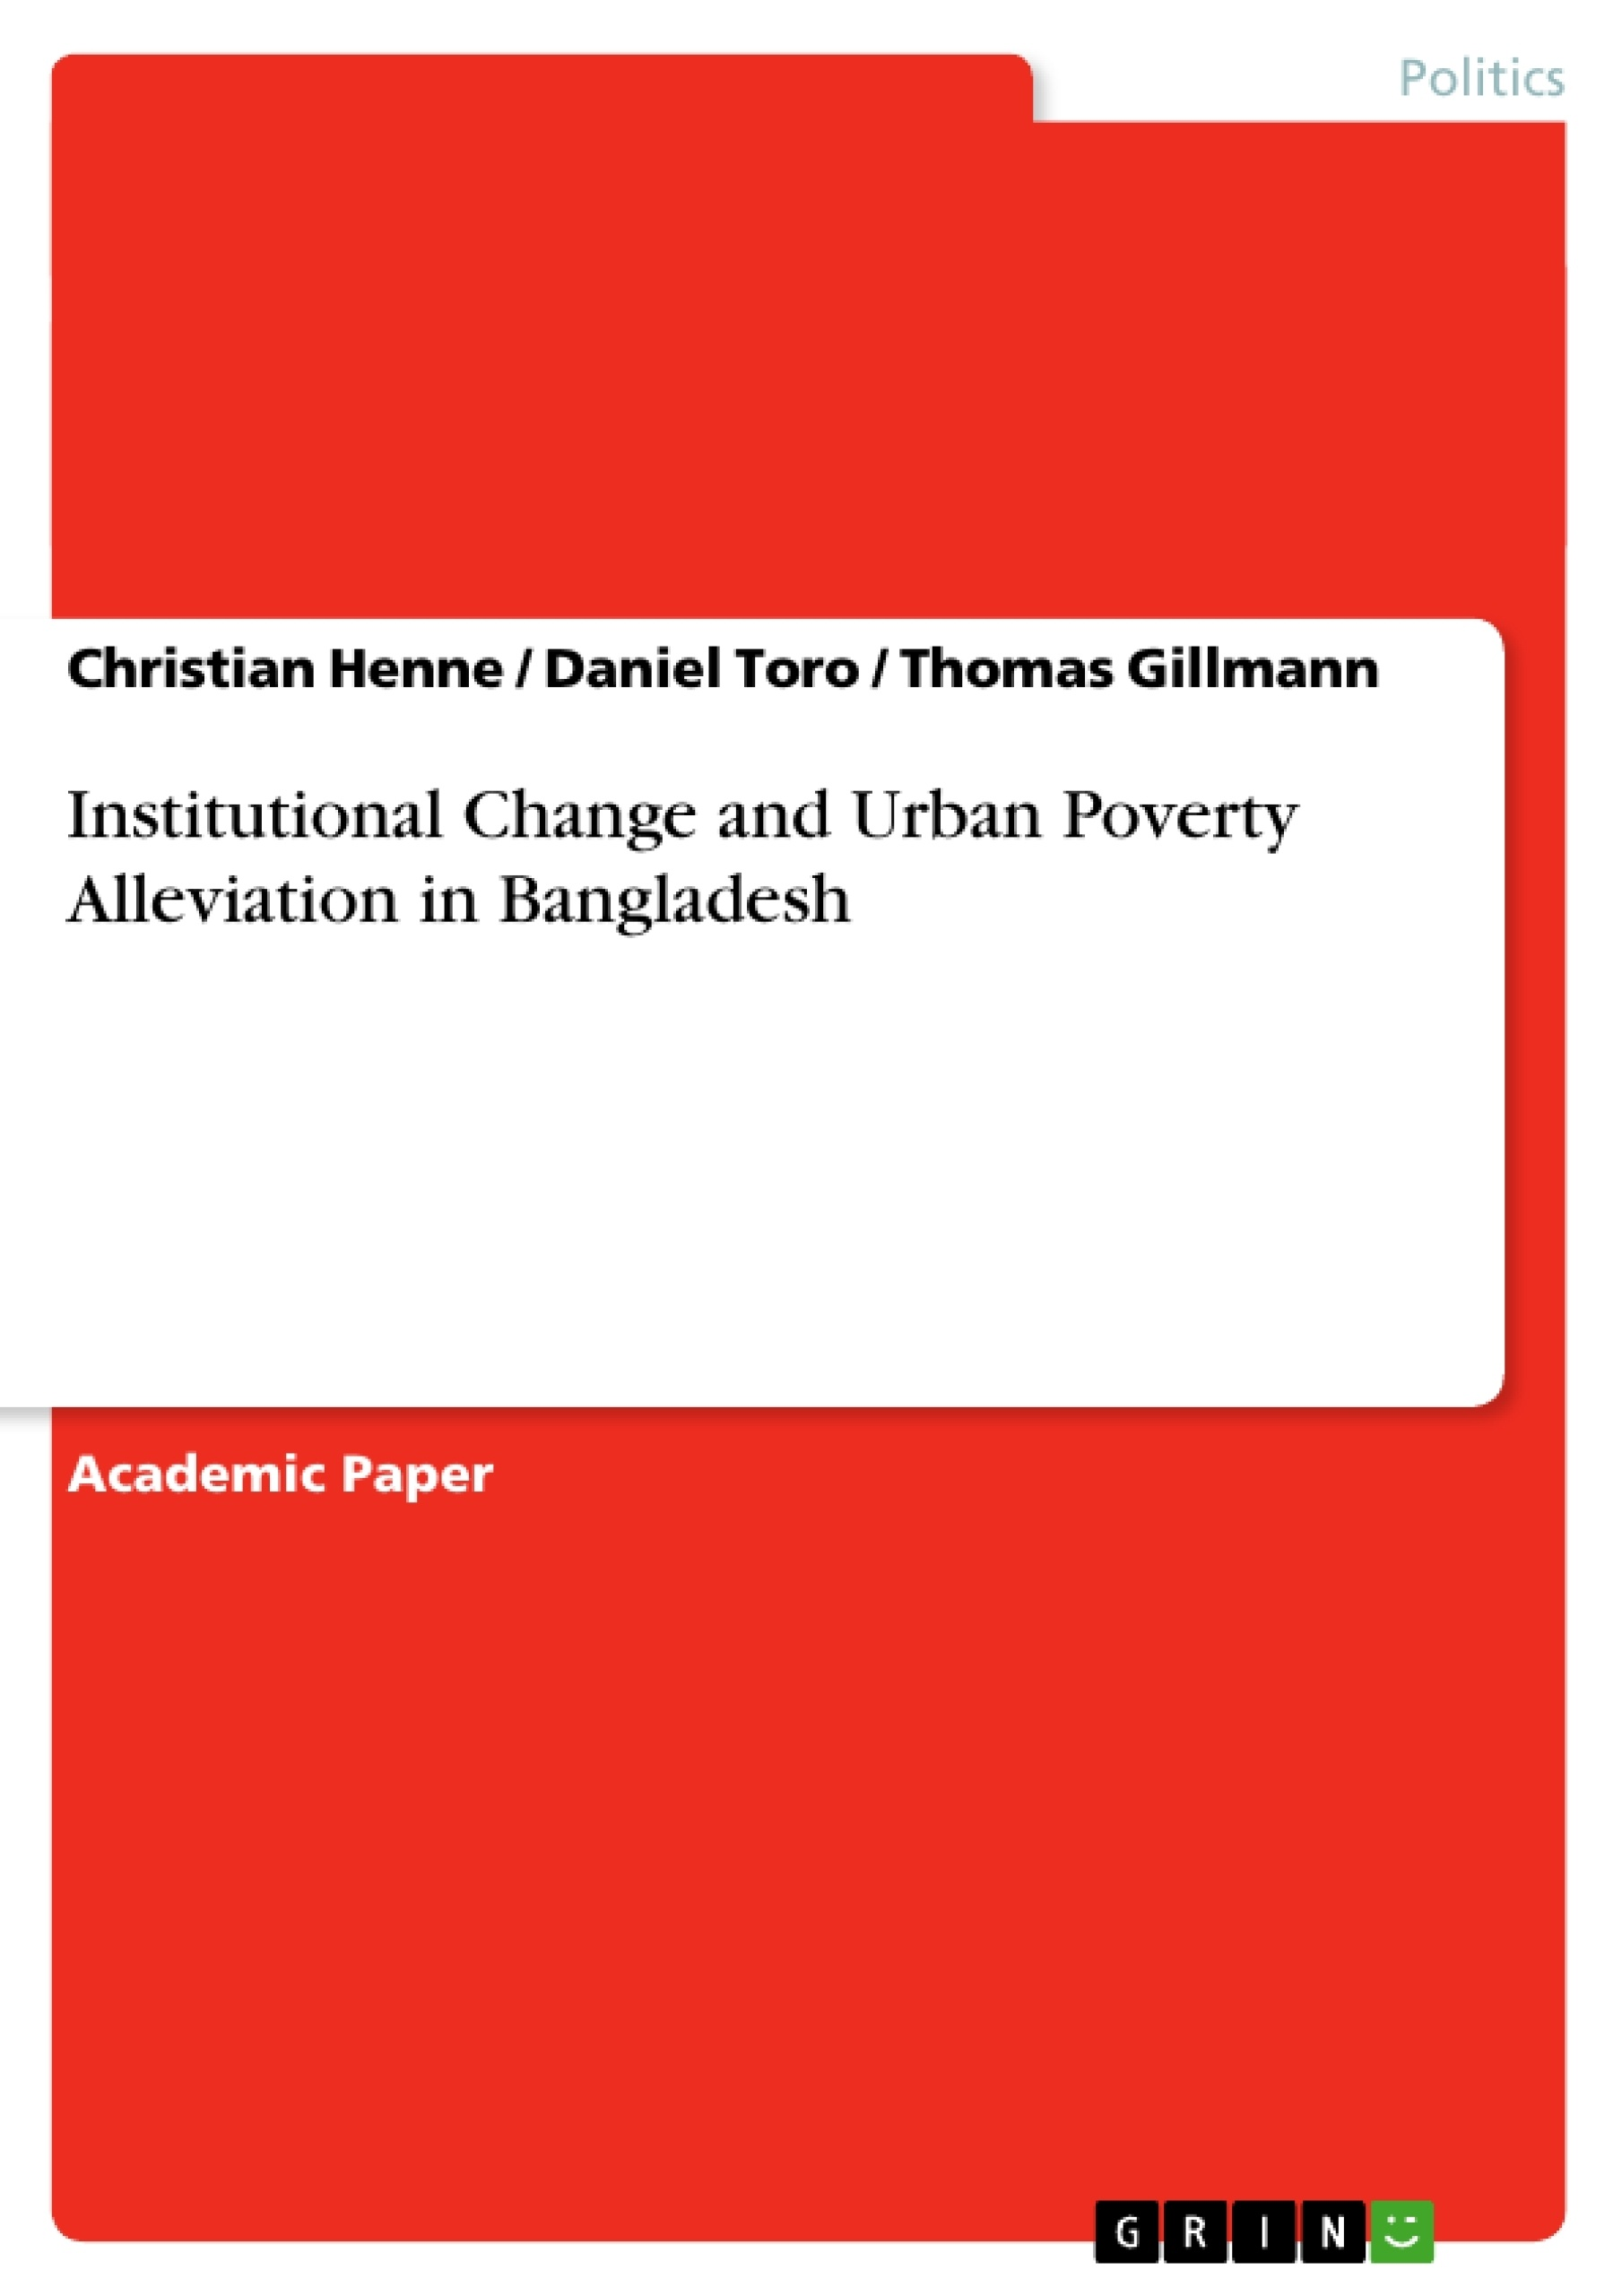 economic model for poverty alleviation thesis Financing microenterprises: an analytical study of islamic microfinance  given that microfinance can facilitate poverty alleviation,  a model for islamic.